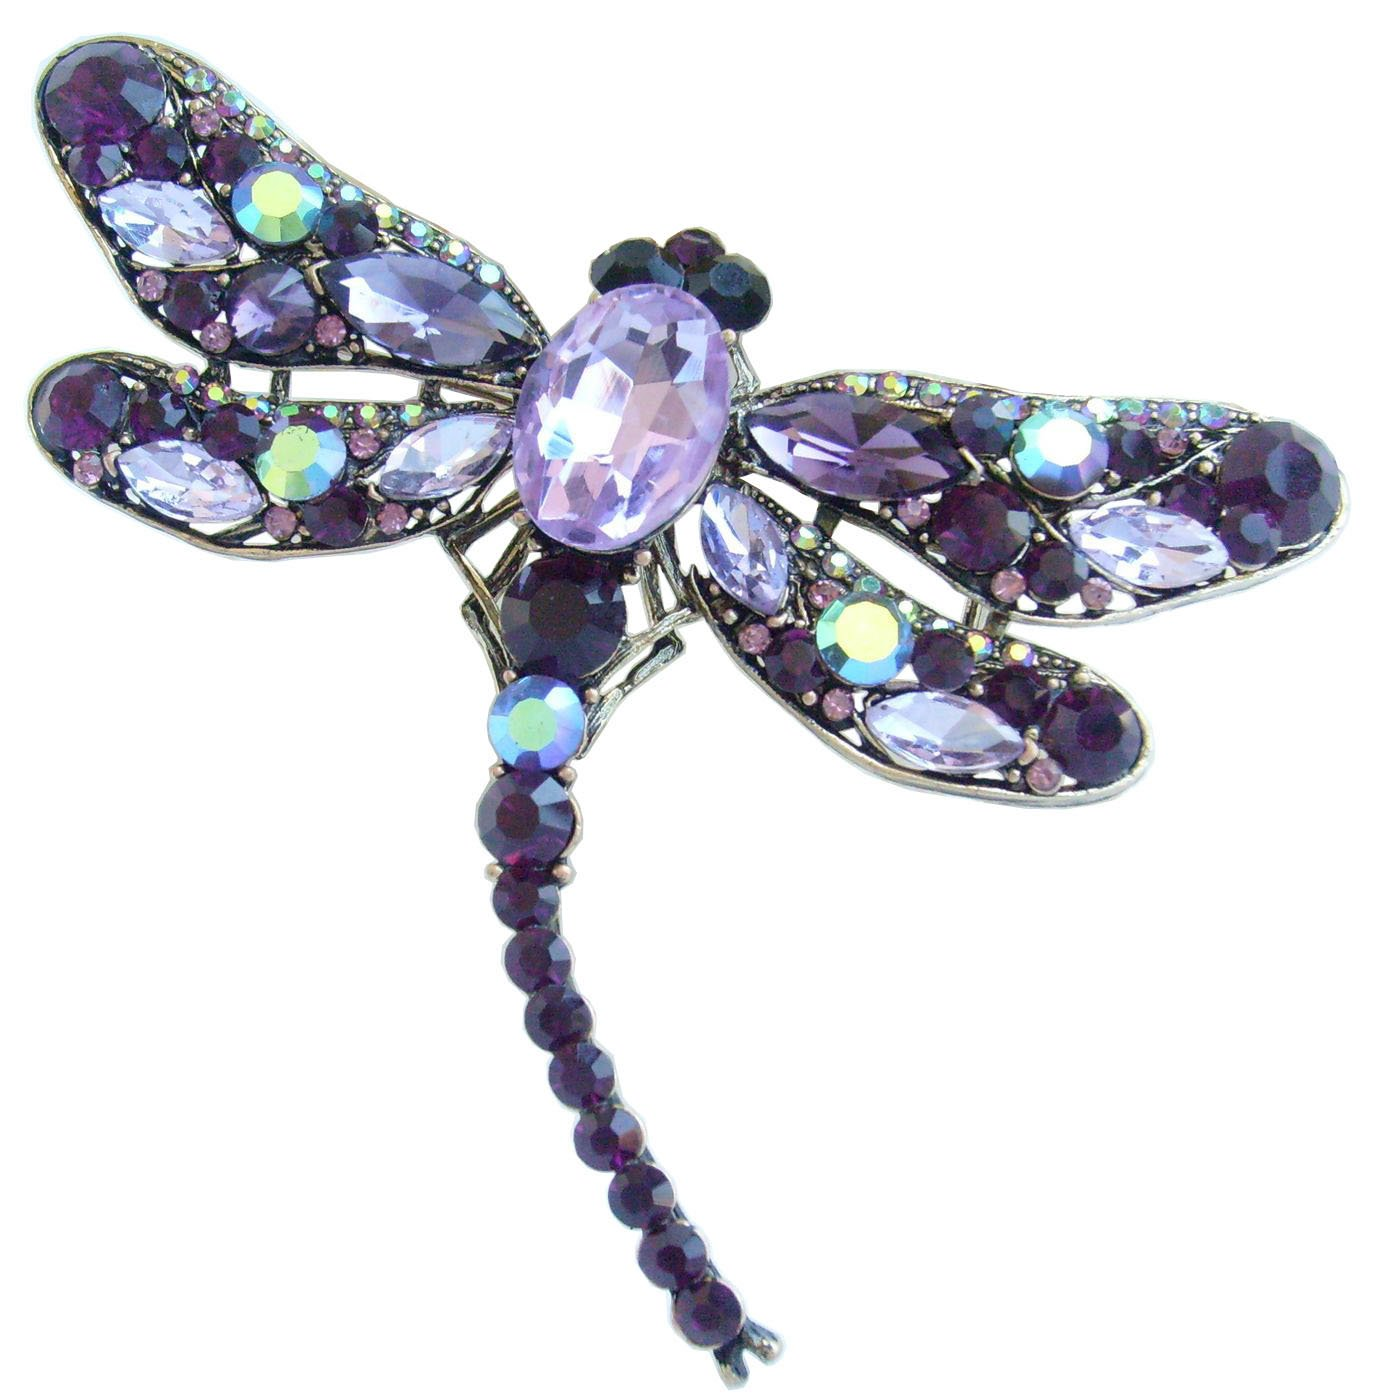 Sindary Elegant 3.74'' Gold-Tone Purple Rhinestone Crystal Dragonfly Brooch Pin Pendant BZ5684 by Animal Brooch-Sindary Jewelry (Image #1)